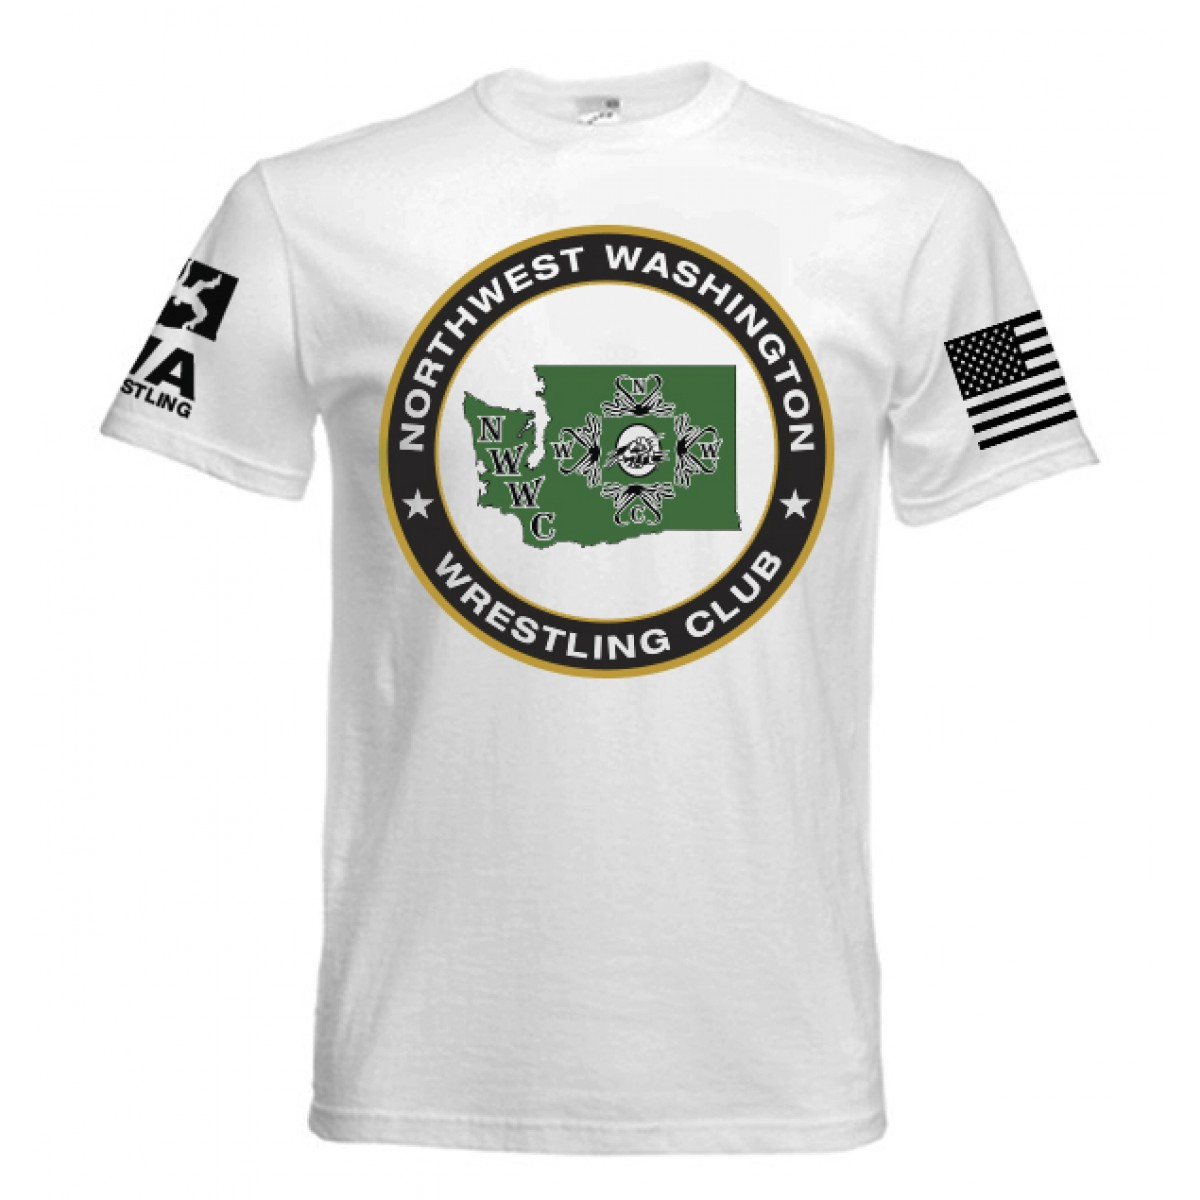 NWWC White T-shirt Green Logo-White-M